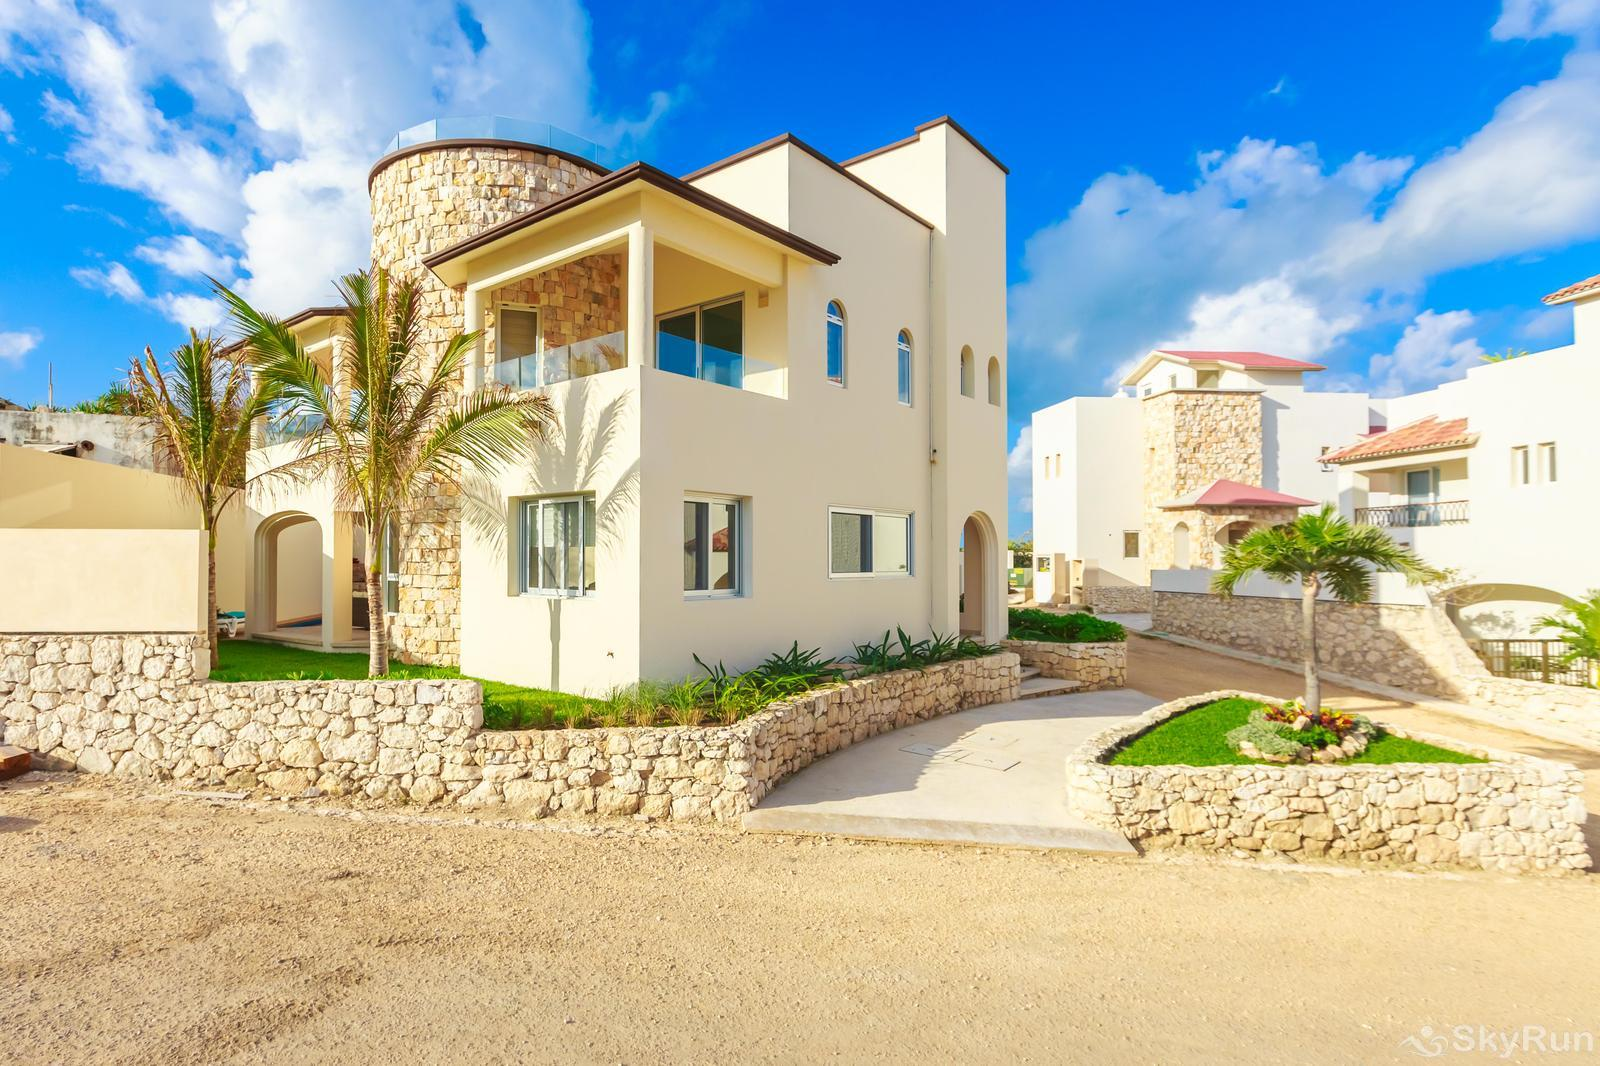 NEW and Unique Residencial Home Prime Location Isla Mujeres Front View